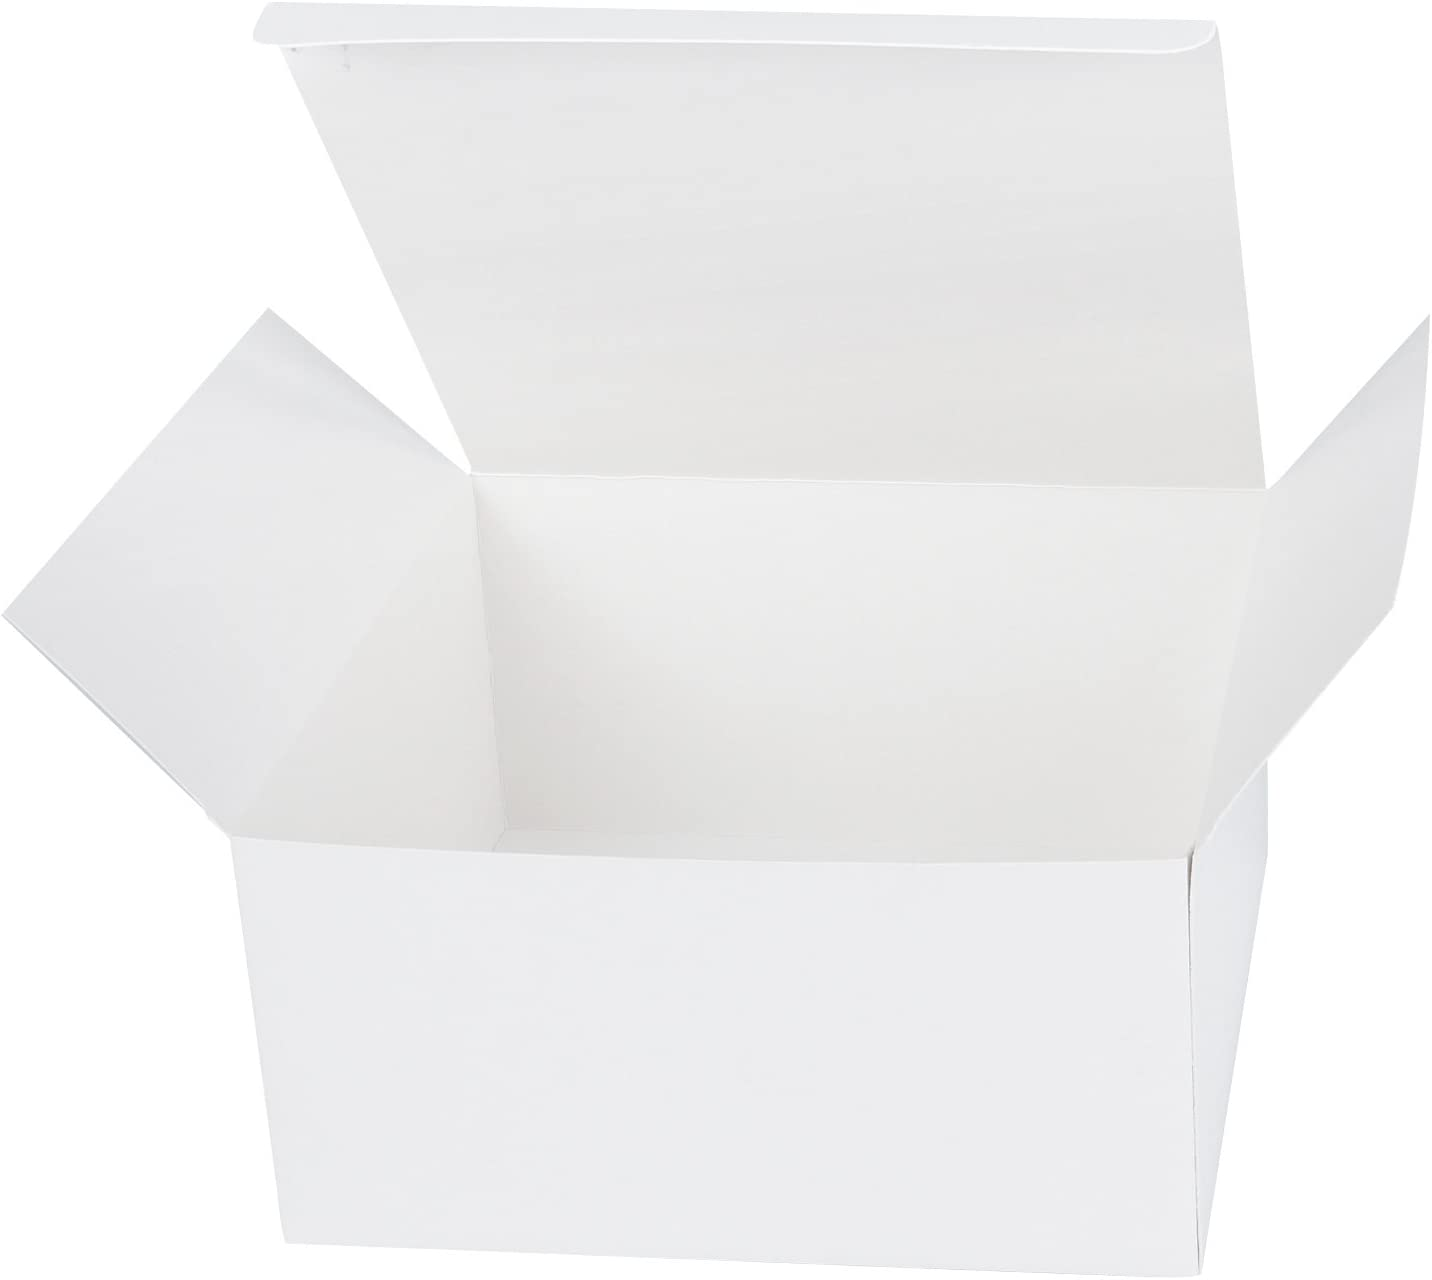 LaRibbons 20Pcs Recycled Gift Boxes - 8 x 8 x 4 inches White Paper Box Kraft Cardboard Boxes with Stickers Cotton String, Perfect for Party, Wedding, Gift Wrap